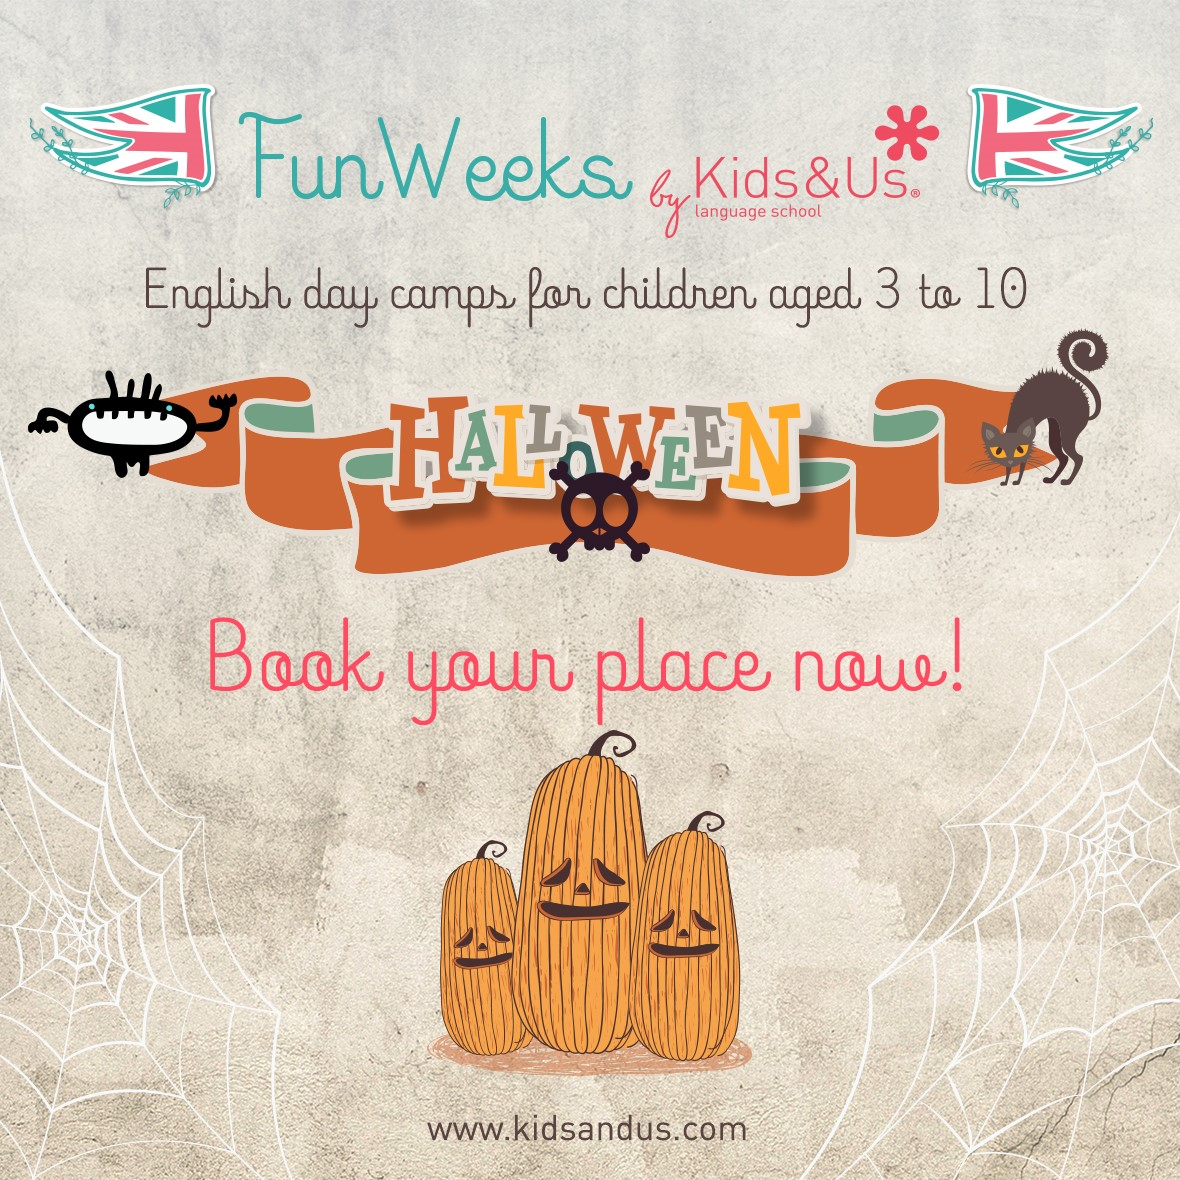 Enjoy a fun-packed Halloween with the Kids&Us Fun Weeks!